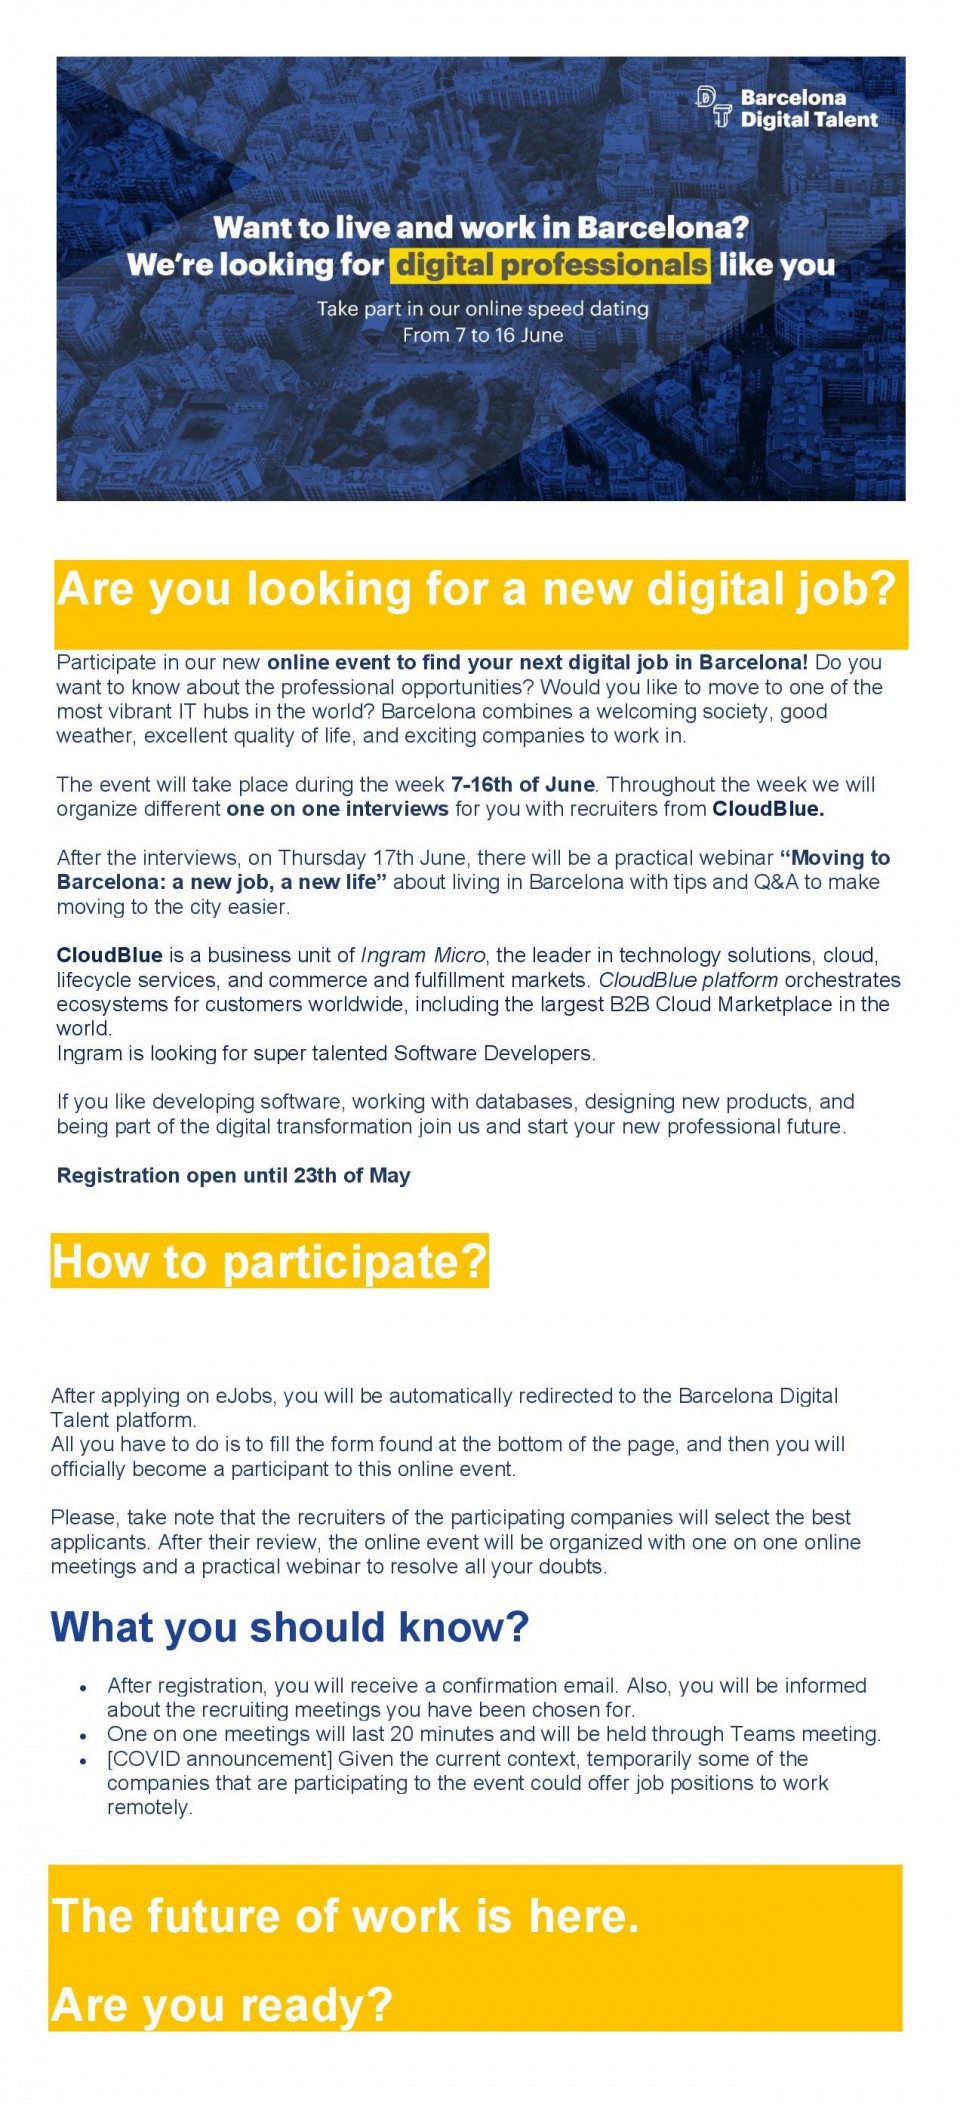 """[A picture containing graphical user interface Description automatically generated]   Are you looking for a new digital job? Participate in our new online event to find your next digital job in Barcelona! Do you want to know about the professional opportunities? Would you like to move to one of the most vibrant IT hubs in the world? Barcelona combines a welcoming society, good weather, excellent quality of life, and exciting companies to work in.  The event will take place during the week 7-16th of June. Throughout the week we will organize different one on one interviews for you with recruiters from CloudBlue.   After the interviews, on Thursday 17th June, there will be a practical webinar """"Moving to Barcelona: a new job, a new life"""" about living in Barcelona with tips and Q&A to make moving to the city easier.  CloudBlue is a business unit of Ingram Micro, the leader in technology solutions, cloud, lifecycle services, and commerce and fulfillment markets. CloudBlue platform orchestrates ecosystems for customers worldwide, including the largest B2B Cloud Marketplace in the world. Ingram is looking for super talented Software Developers.   If you like developing software, working with databases, designing new products, and being part of the digital transformation join us and start your new professional future.  Registration open until 23th of May   How to participate?       After applying on eJobs, you will be automatically redirected to the Barcelona Digital Talent platform. All you have to do is to fill the form found at the bottom of the page, and then you will officially become a participant to this online event.   Please, take note that the recruiters of the participating companies will select the best applicants. After their review, the online event will be organized with one on one online meetings and a practical webinar to resolve all your doubts.   What you should know? After registration, you will receive a confirmation email. Also, you will be informed ab"""